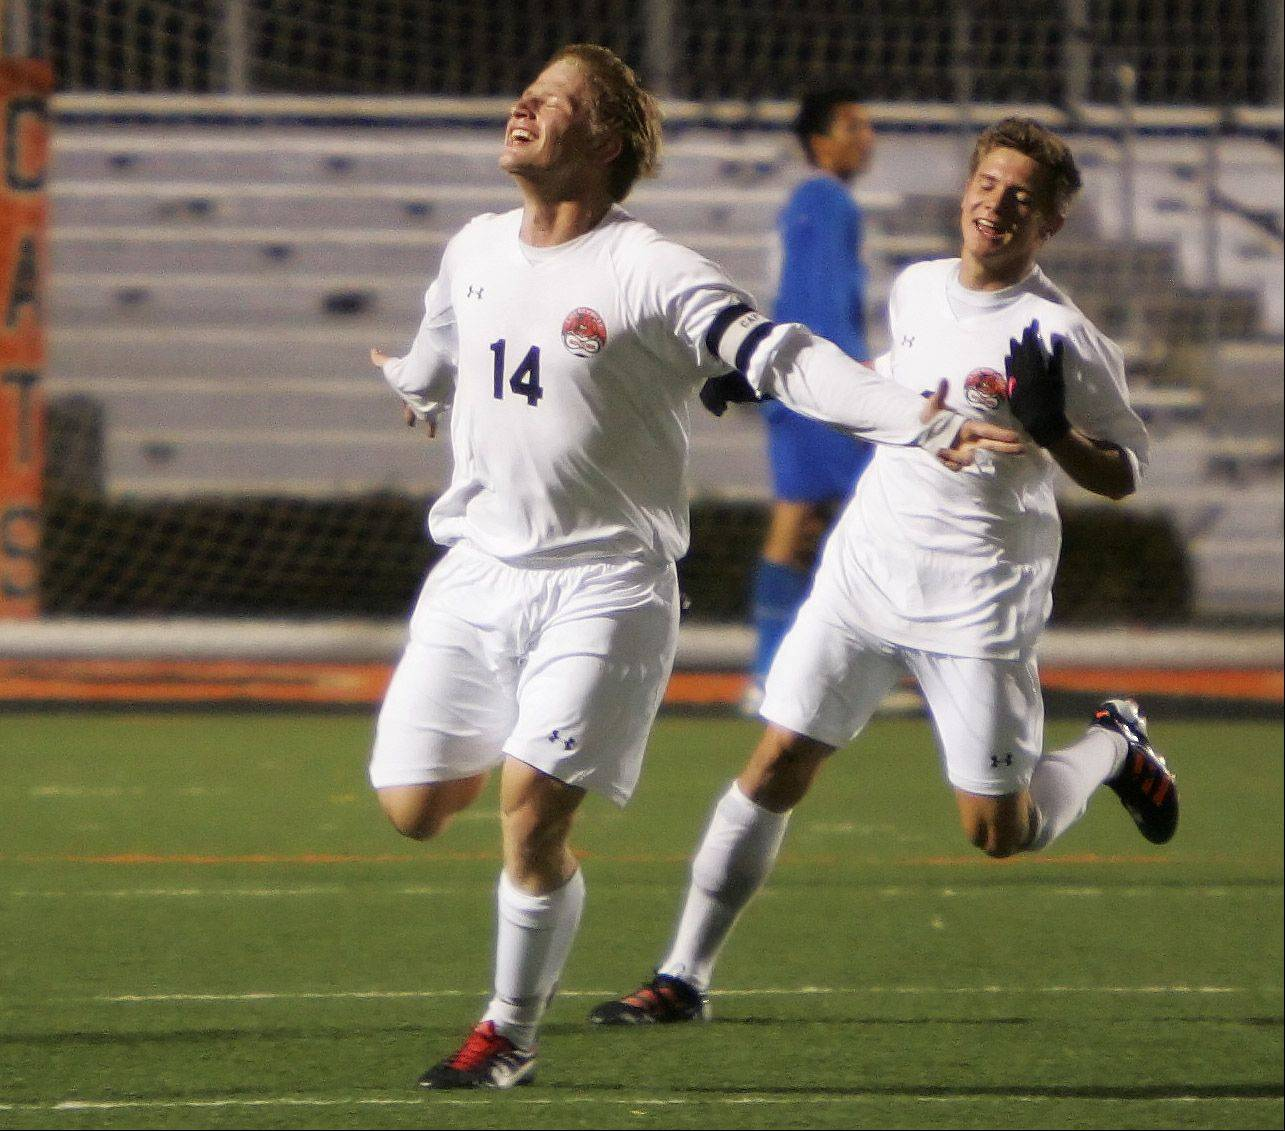 Libertyville forward Lloyd Chatfield III celebrates after scoring the first Thursday against Warren at Libertyville. Libertyville�s Ralf Zehnter is to the right.